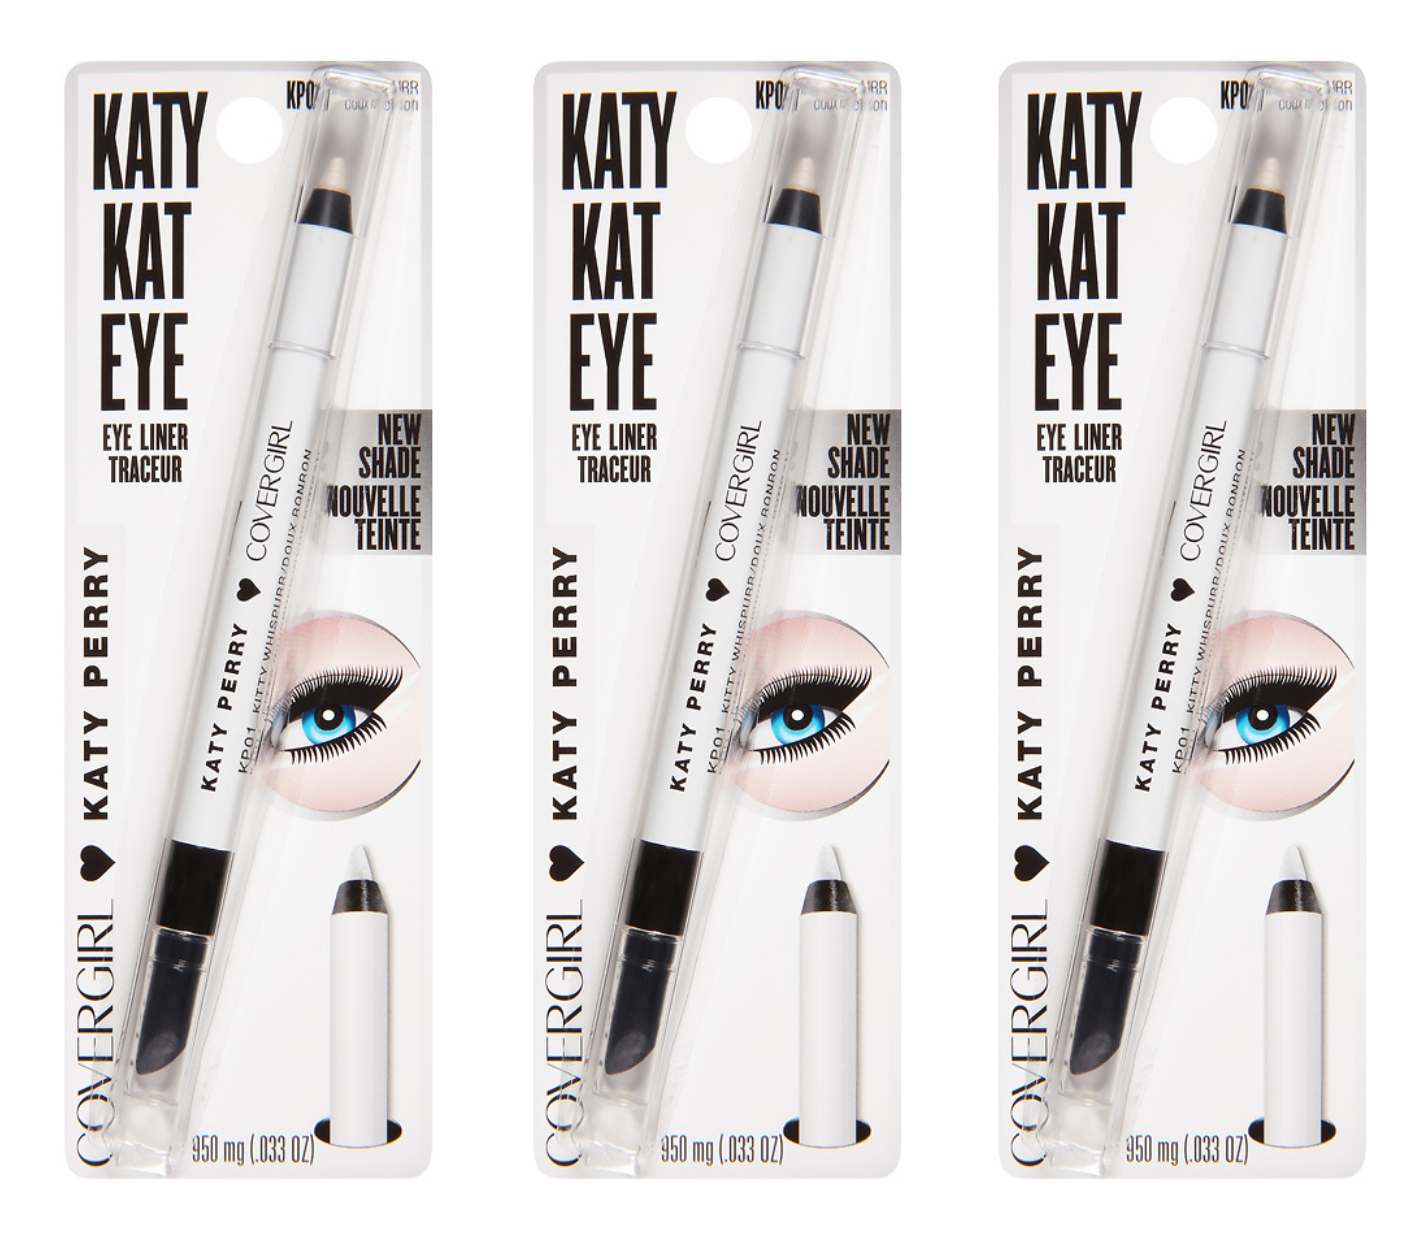 Primary image for CoverGirl Katy Kat Eye Eye Liner, Kitty Whispurr (3-PACK)